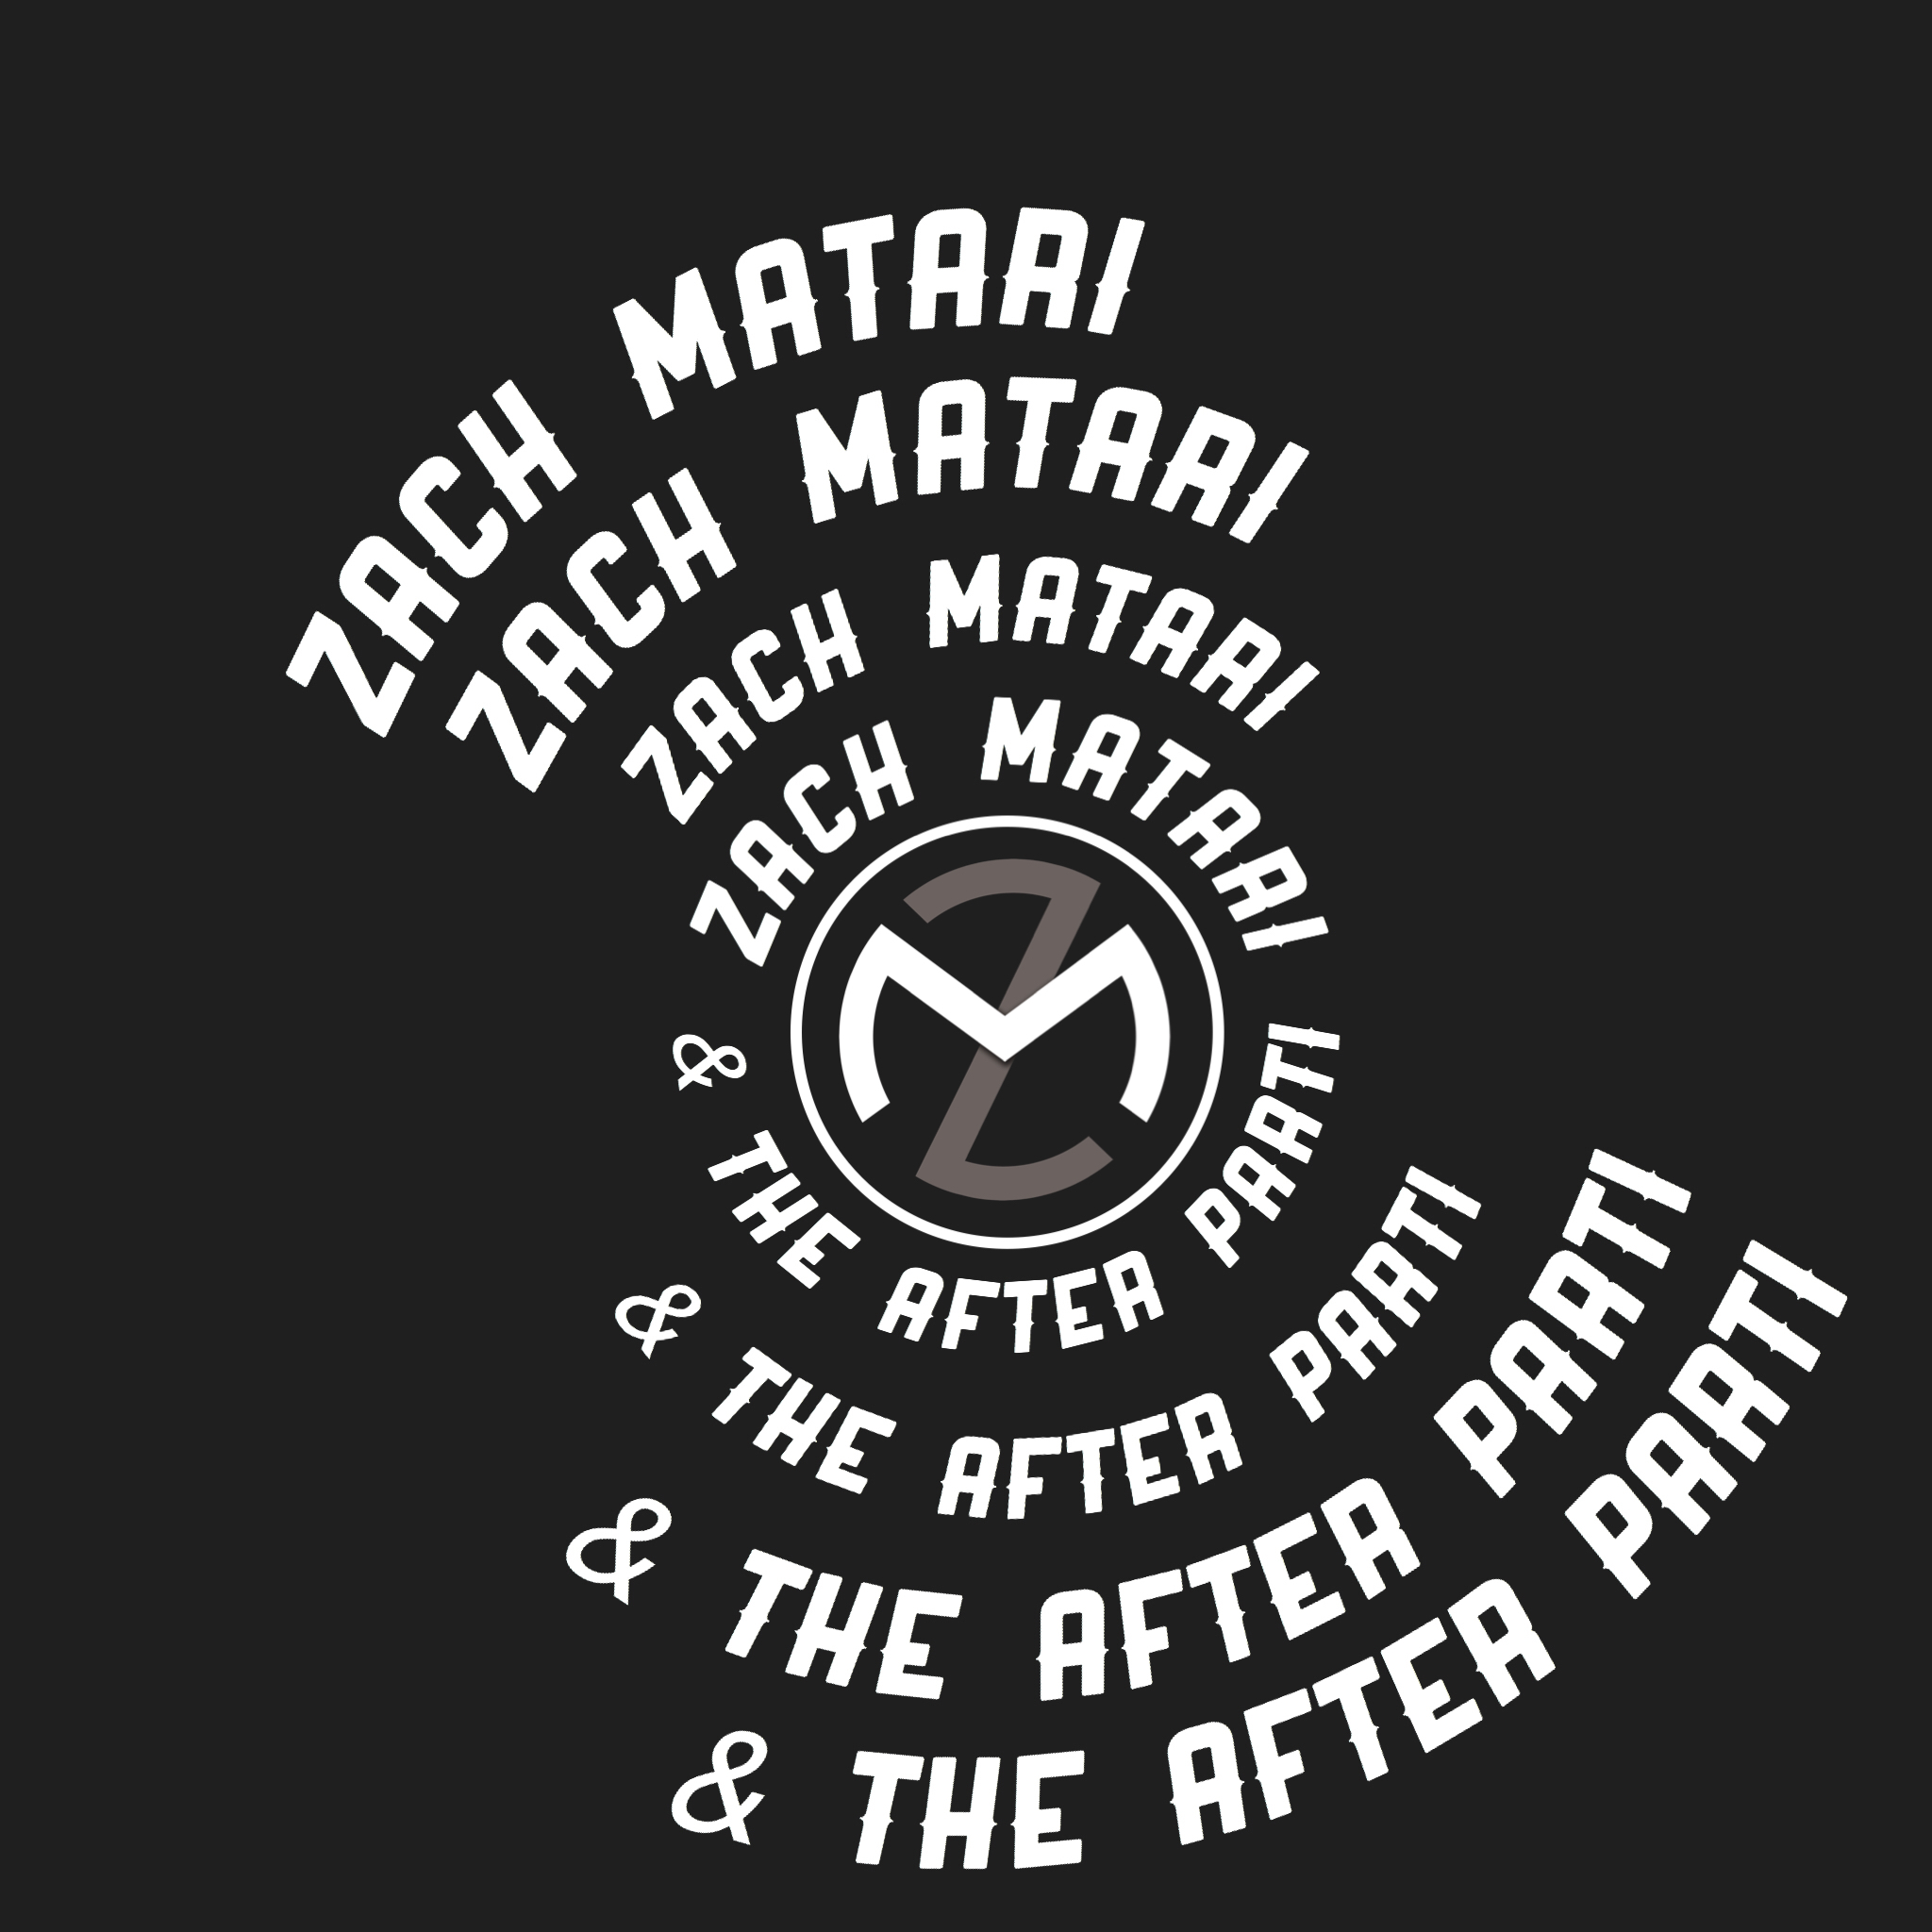 Zach Matari & After Parti Logo.JPG